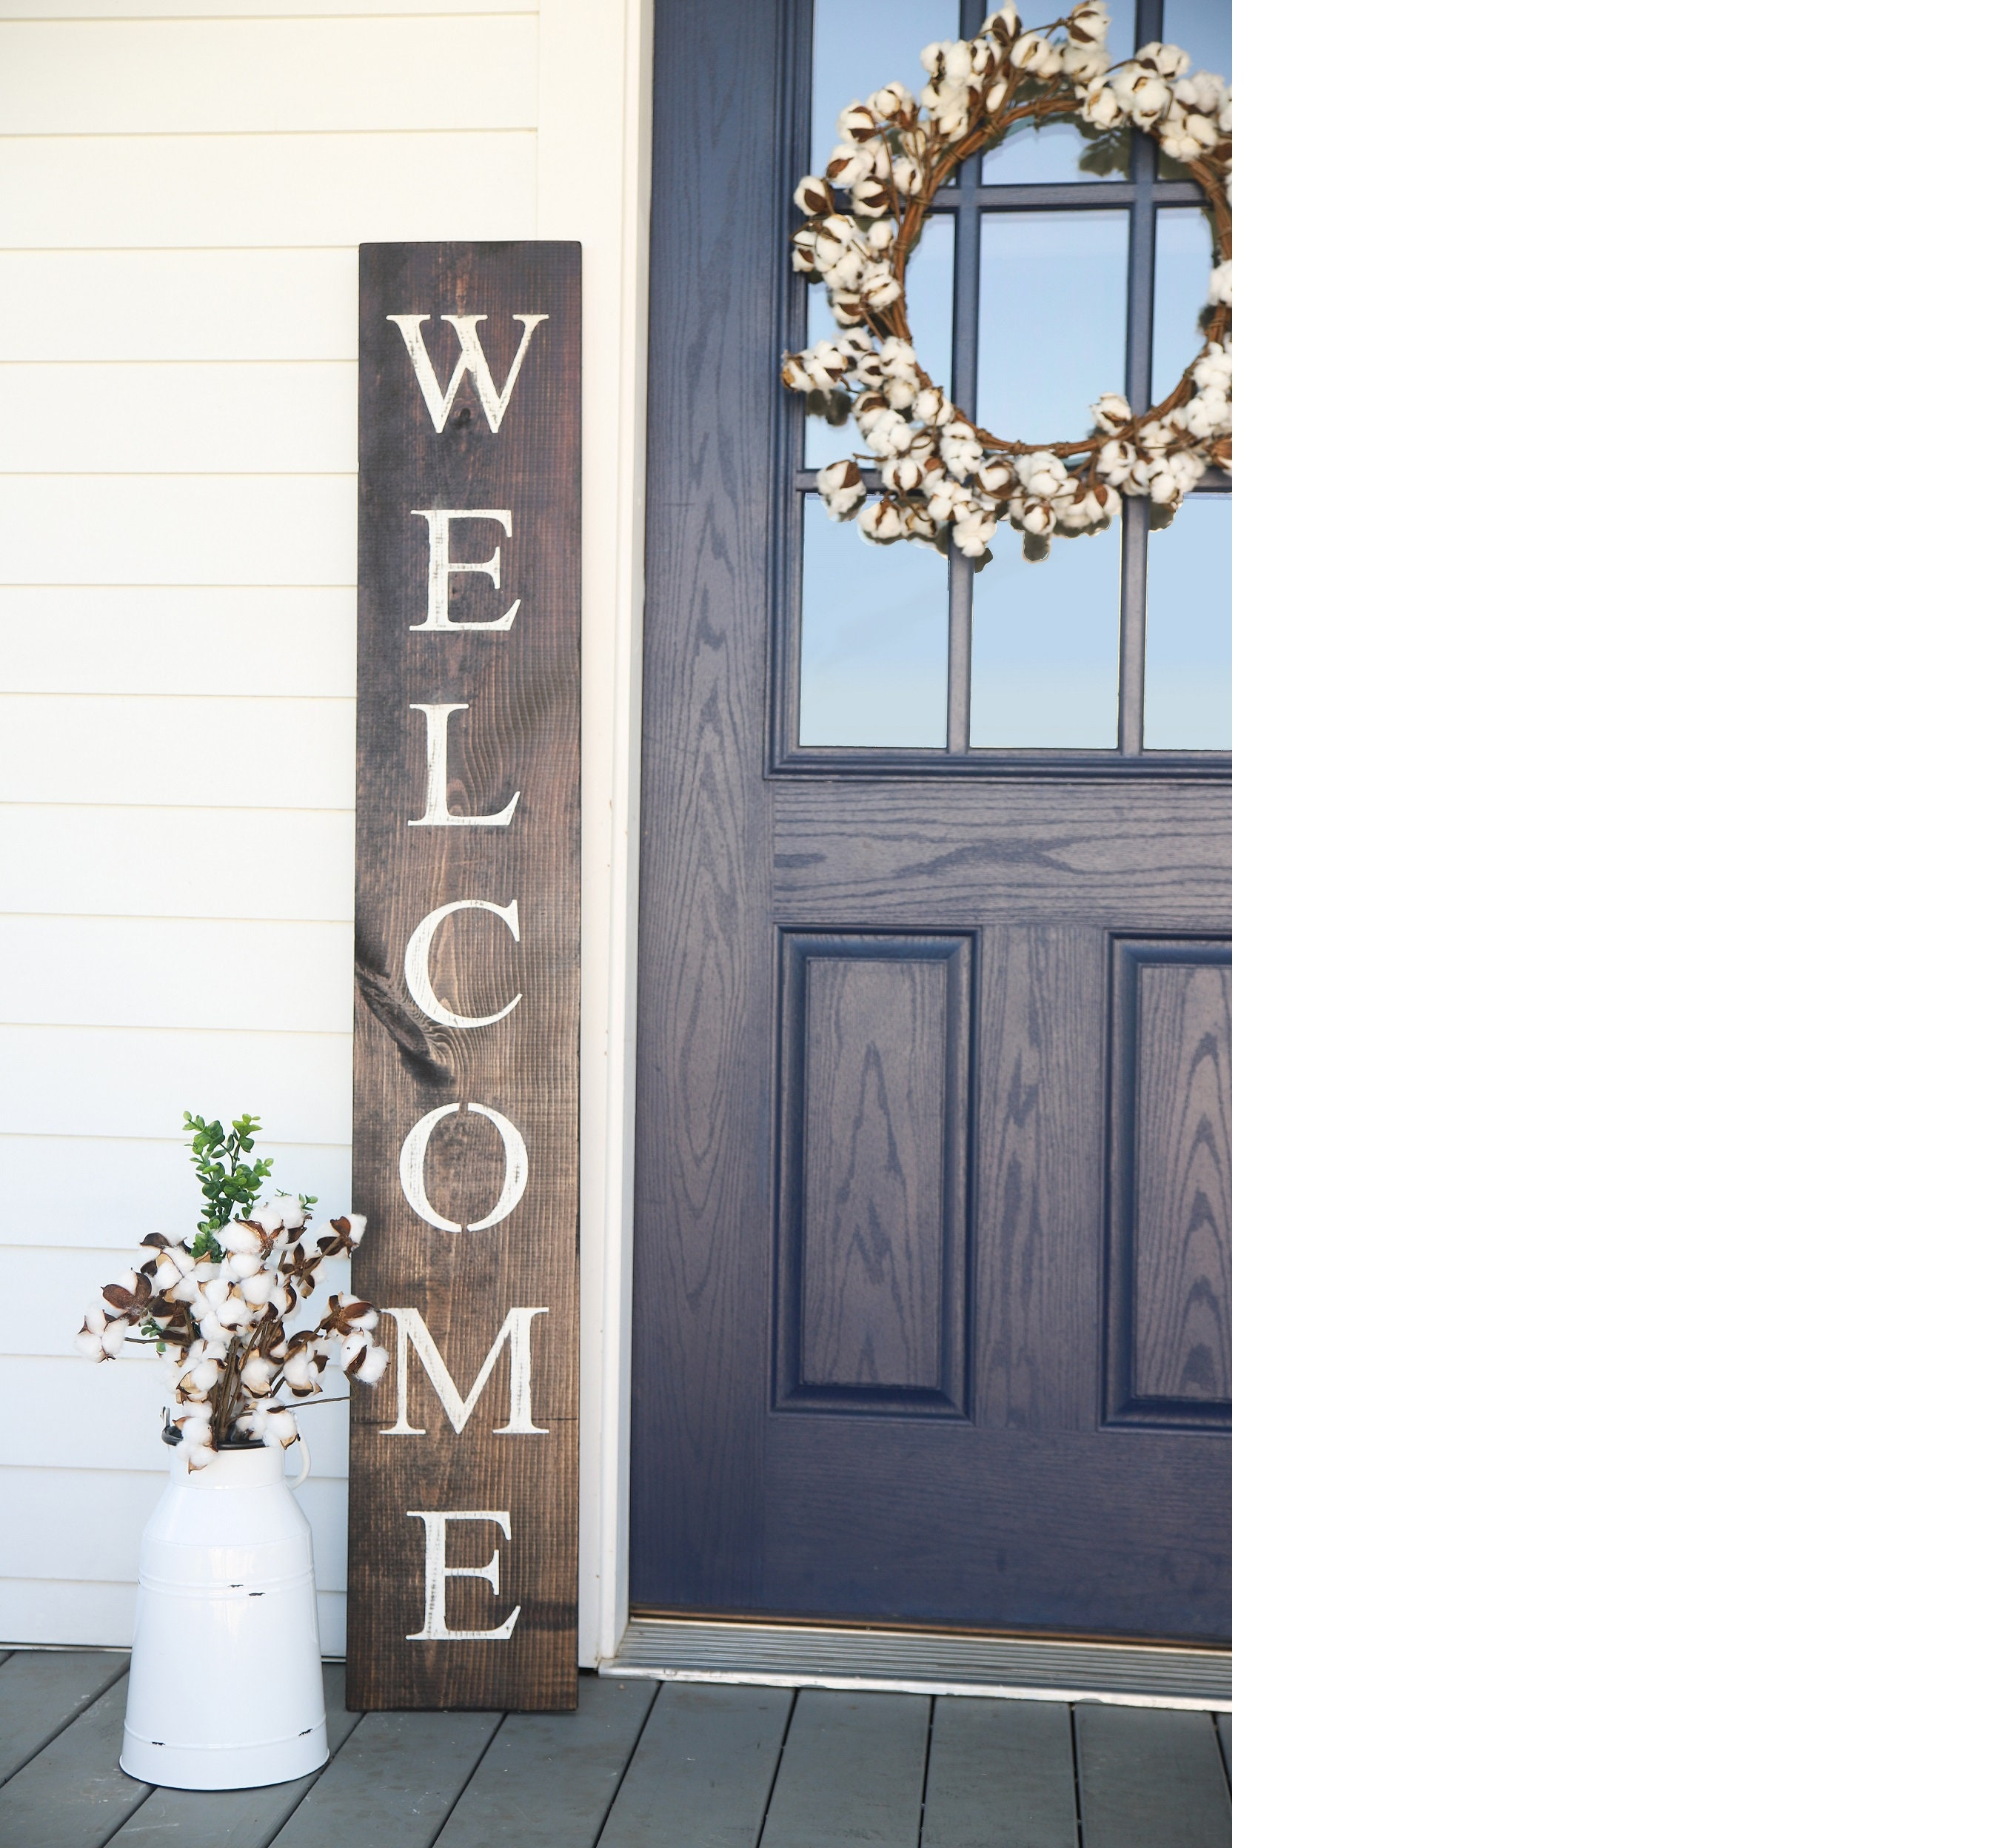 Genial WELCOME SIGN, Welcome Sign For Front Door, Rustic Welcome Sign, Outdoor  Welcome Sign, Vertical Welcome Sign, Wood Welcome Sign